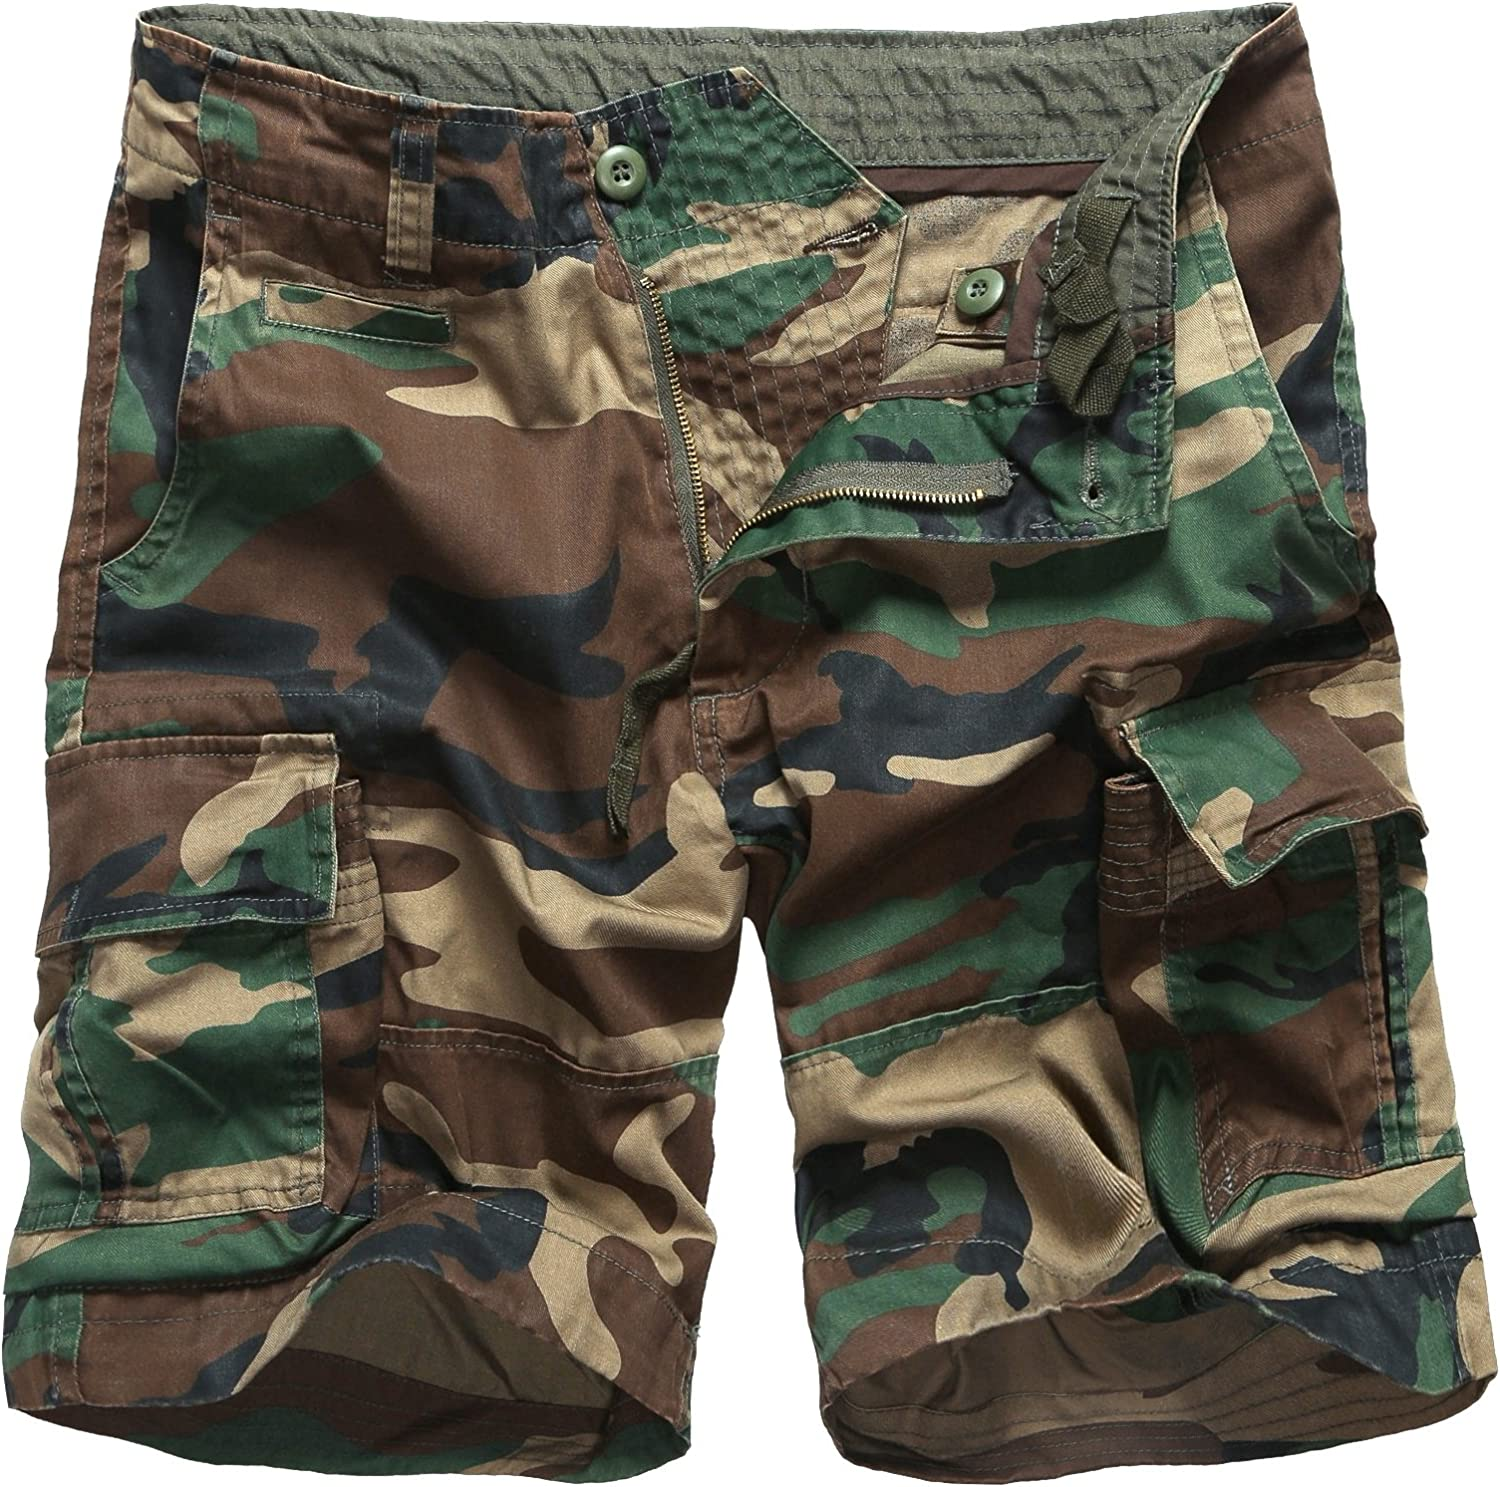 Backbone Mens Army Tactical Military Trust New sales Cargo C Shorts Work Fishing